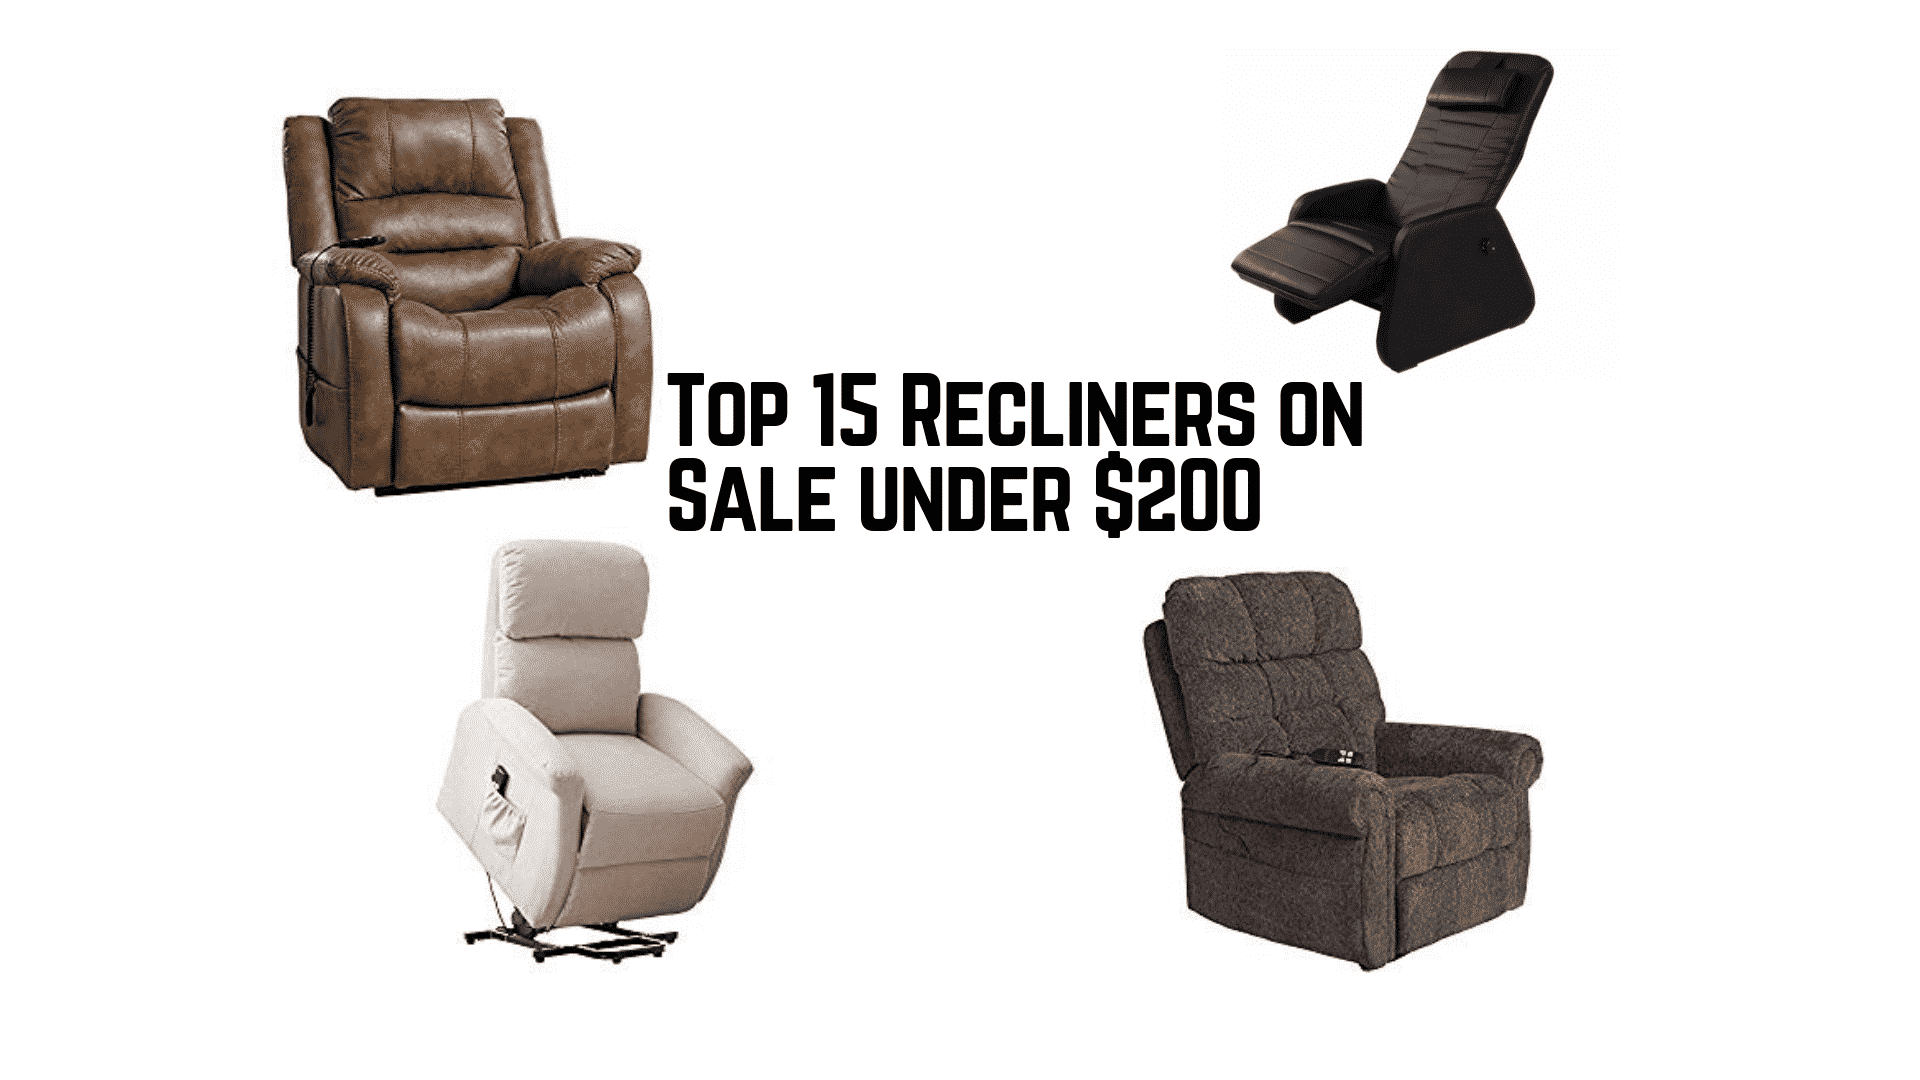 Top 15 Recliners Under 200 In 2020 Recliners Guide